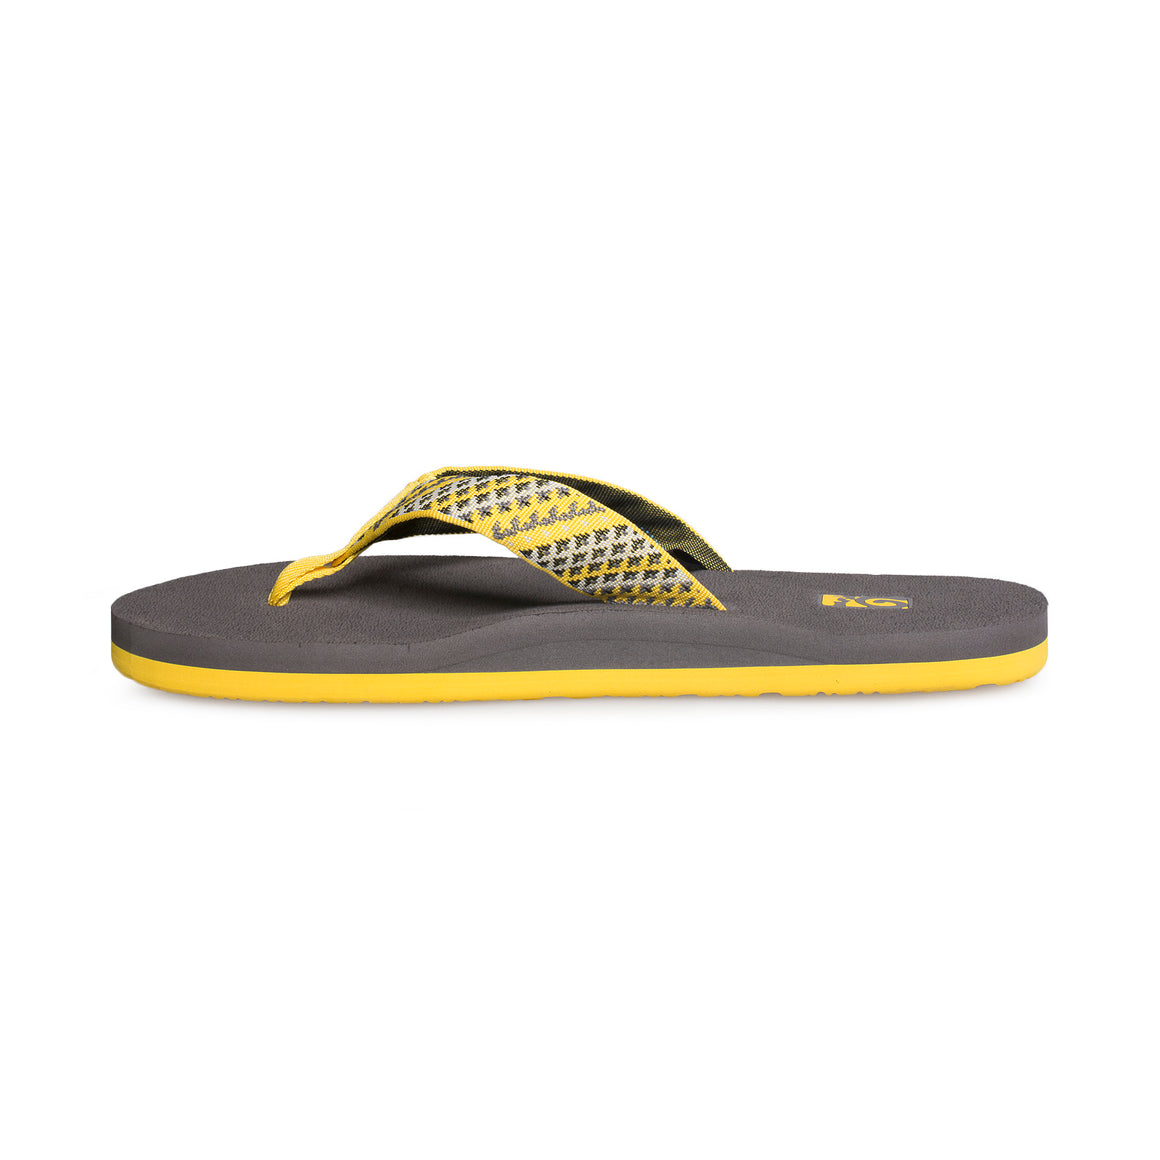 Teva Mush II Fleet Yellow Flip Flops - Men's